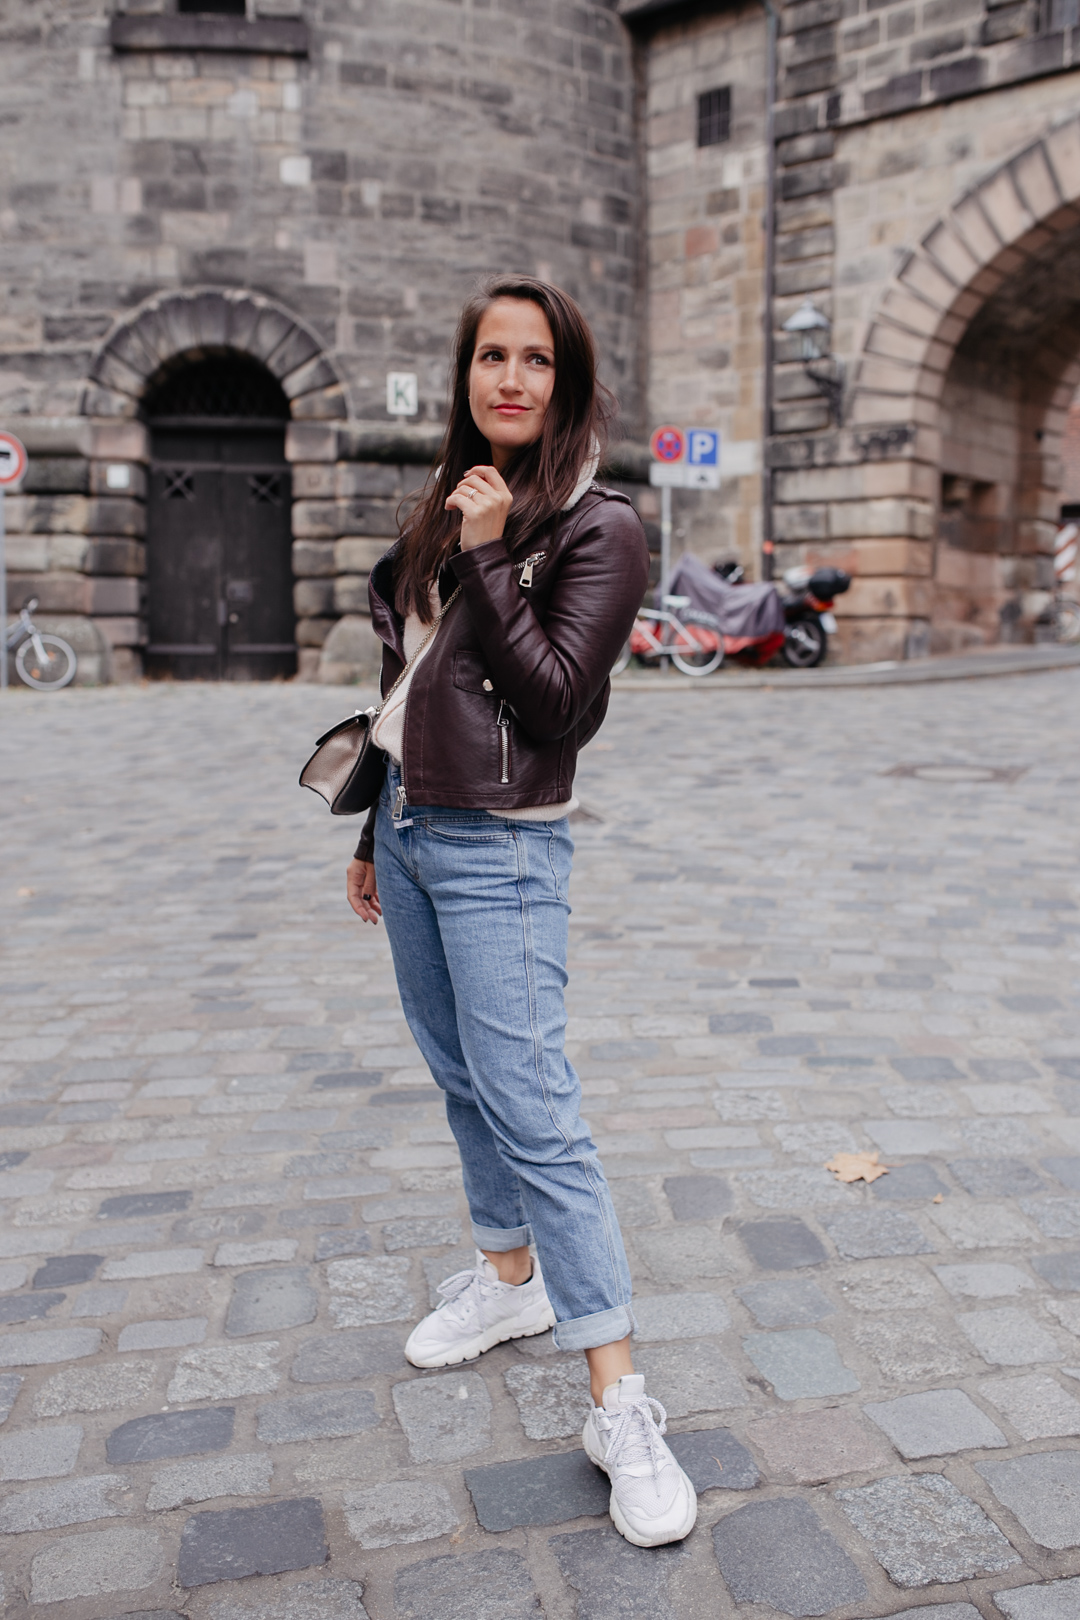 Herbstliches Outfit mit Maje Lederjacke - Pieces of Mariposa // Fashion & Lifestyle Blog Nürnberg